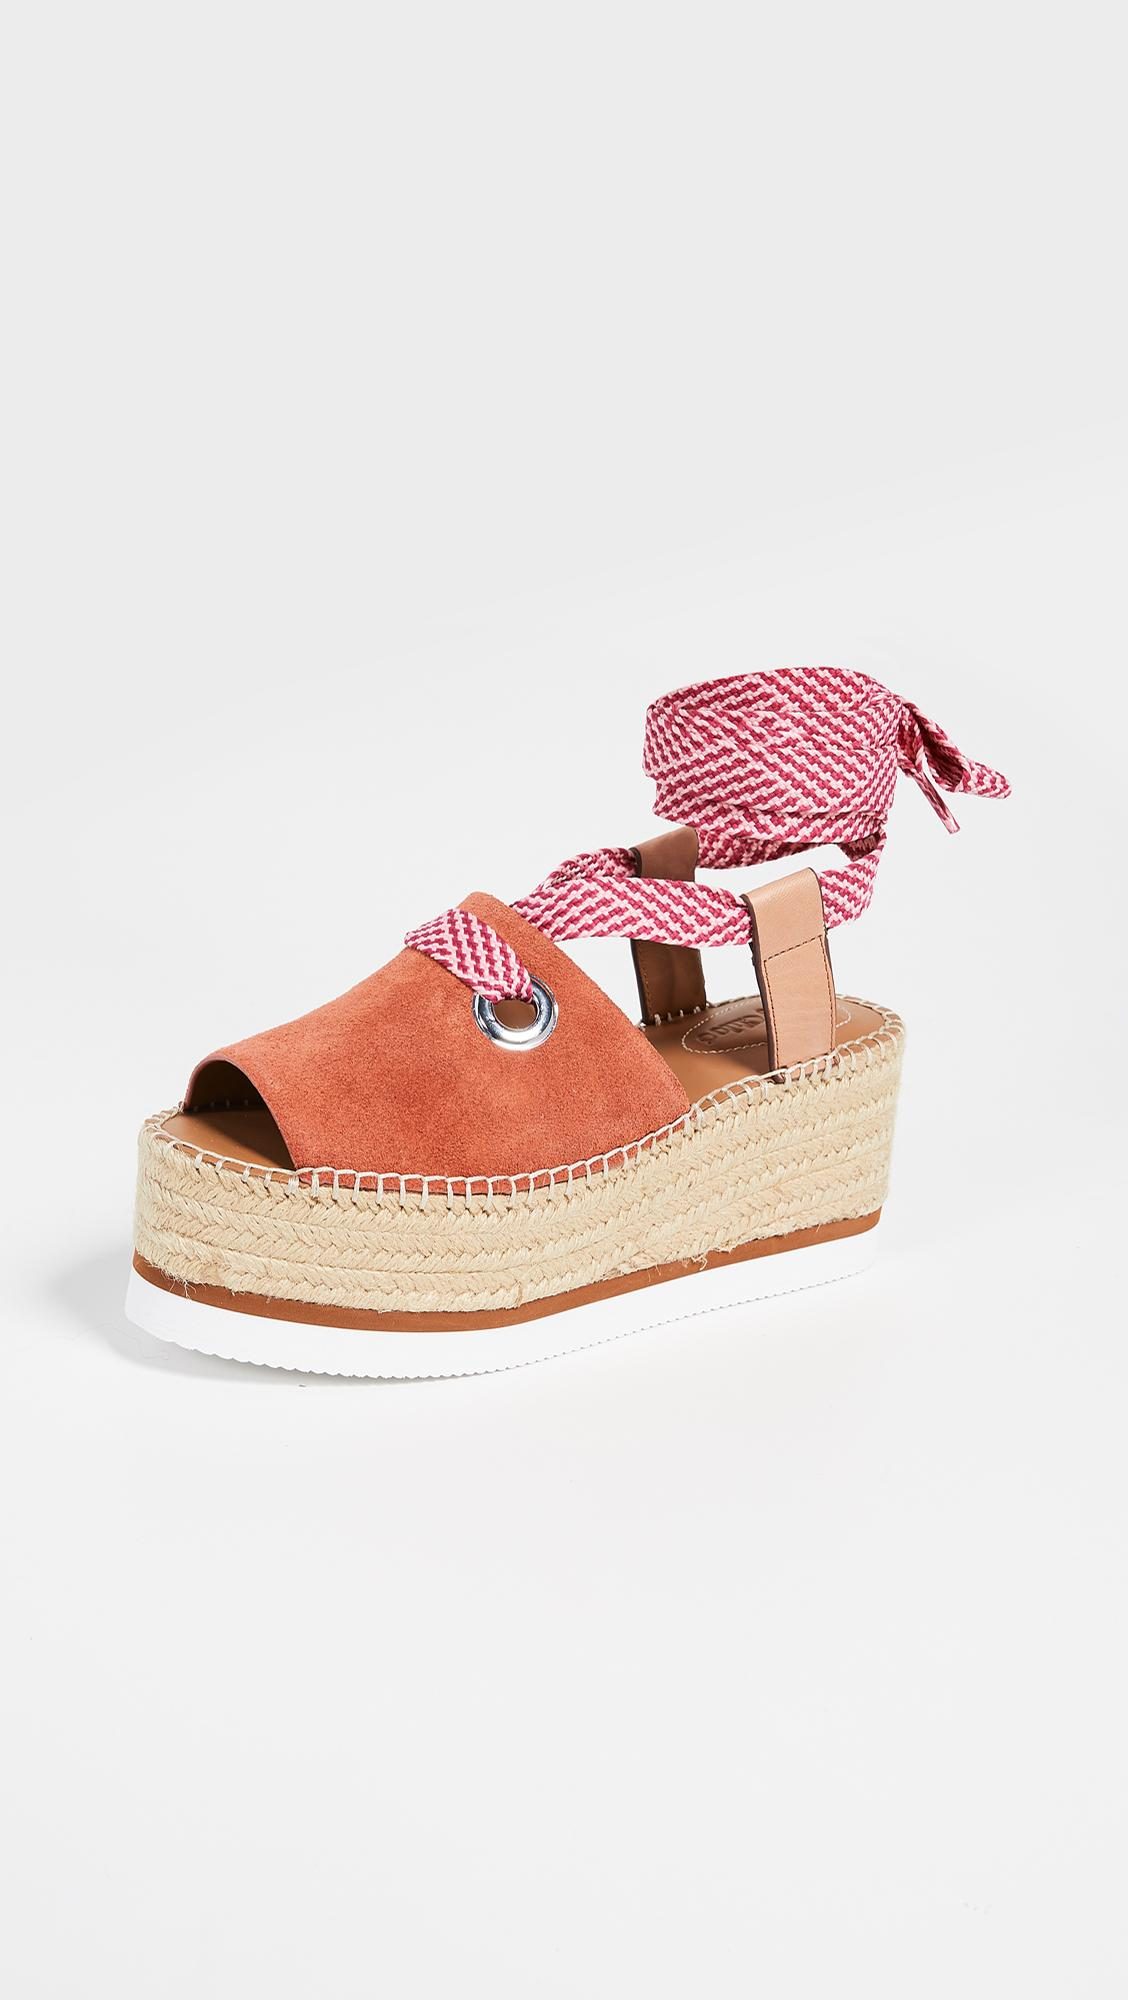 8902e715ec19 Lyst - See By Chloé Glyn Amber Lace Up Espadrilles